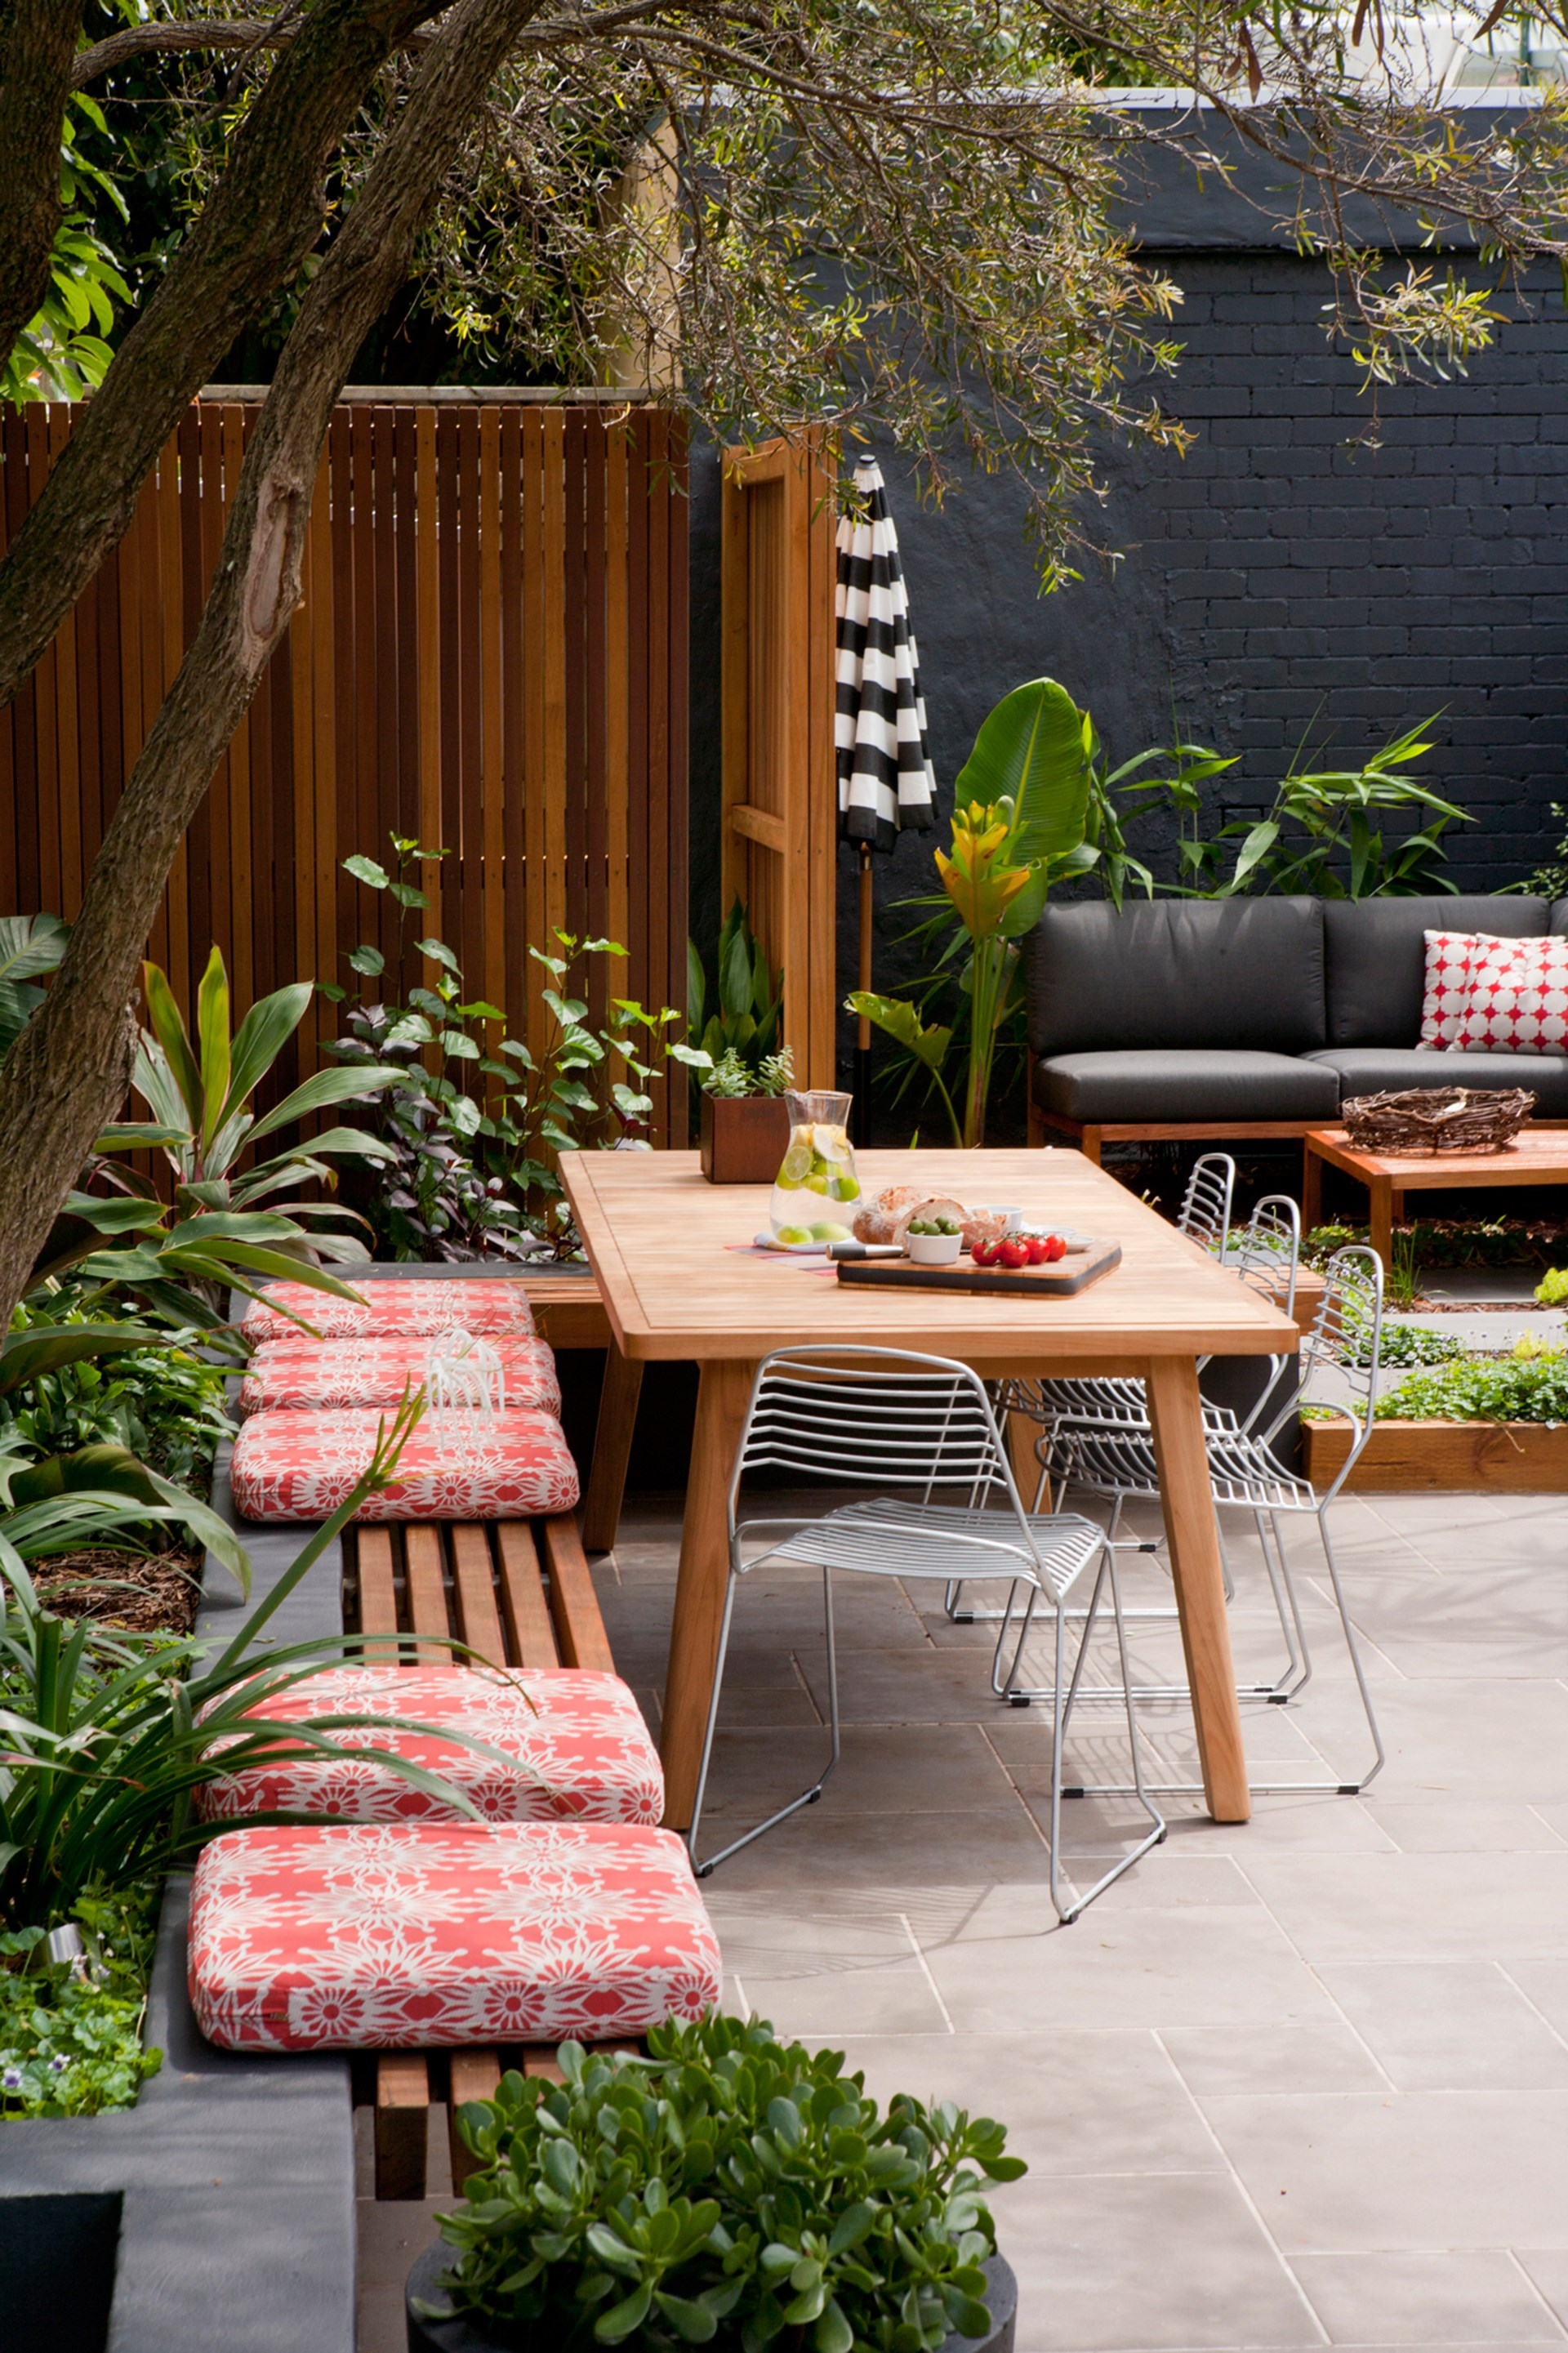 "**Built-in furniture is the future** – use quality materials and construct a built-in feature that will last forever and make your garden infinitely more useable. [Take a tour of this inner-city backyard transformation](http://www.homestolove.com.au/inner-city-backyard-transformation-3581|target=""_blank"")."